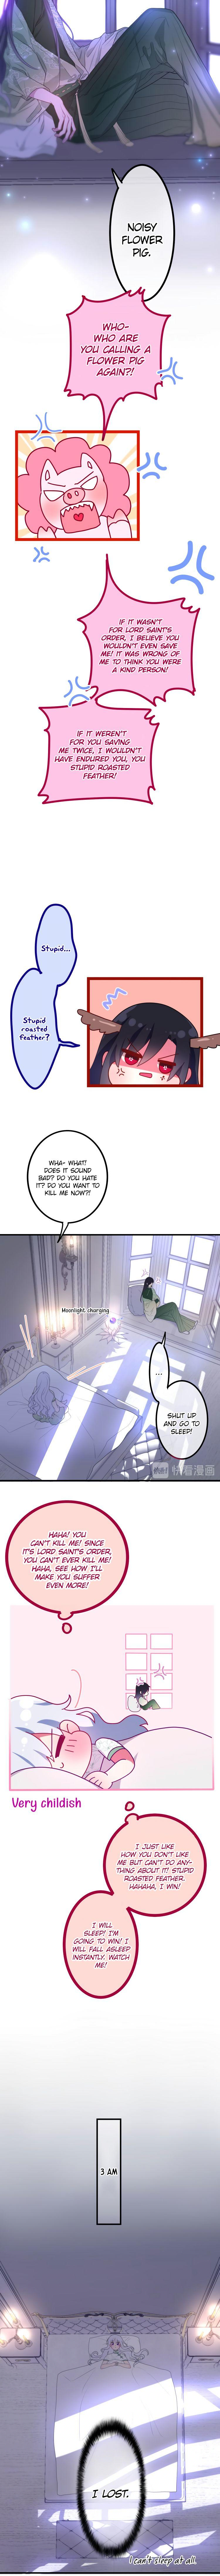 Monster: The Quiet Beast'S Warmth Chapter 3 page 8 - Mangakakalots.com